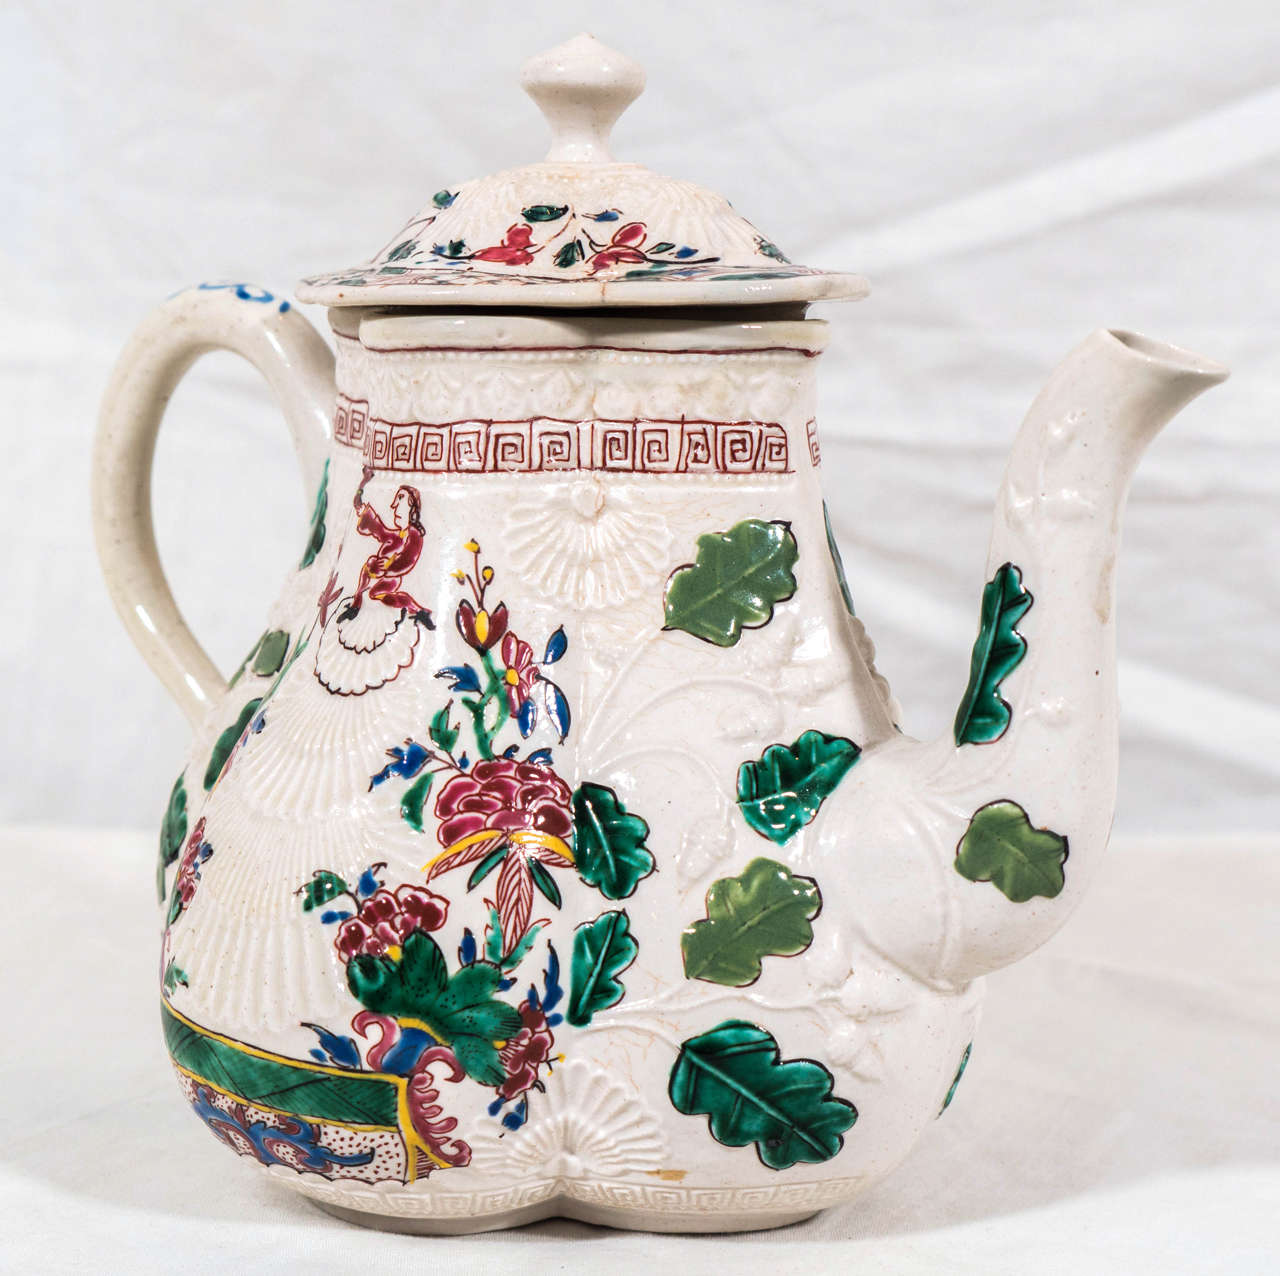 An antique salt-glazed teapot made in Staffordshire England in the mid-18th century. The salt-glazed teapot is beautifully painted. Made in the pectin shape with fine relief molded shell, acorn, and oak leaf decoration painted with translucent